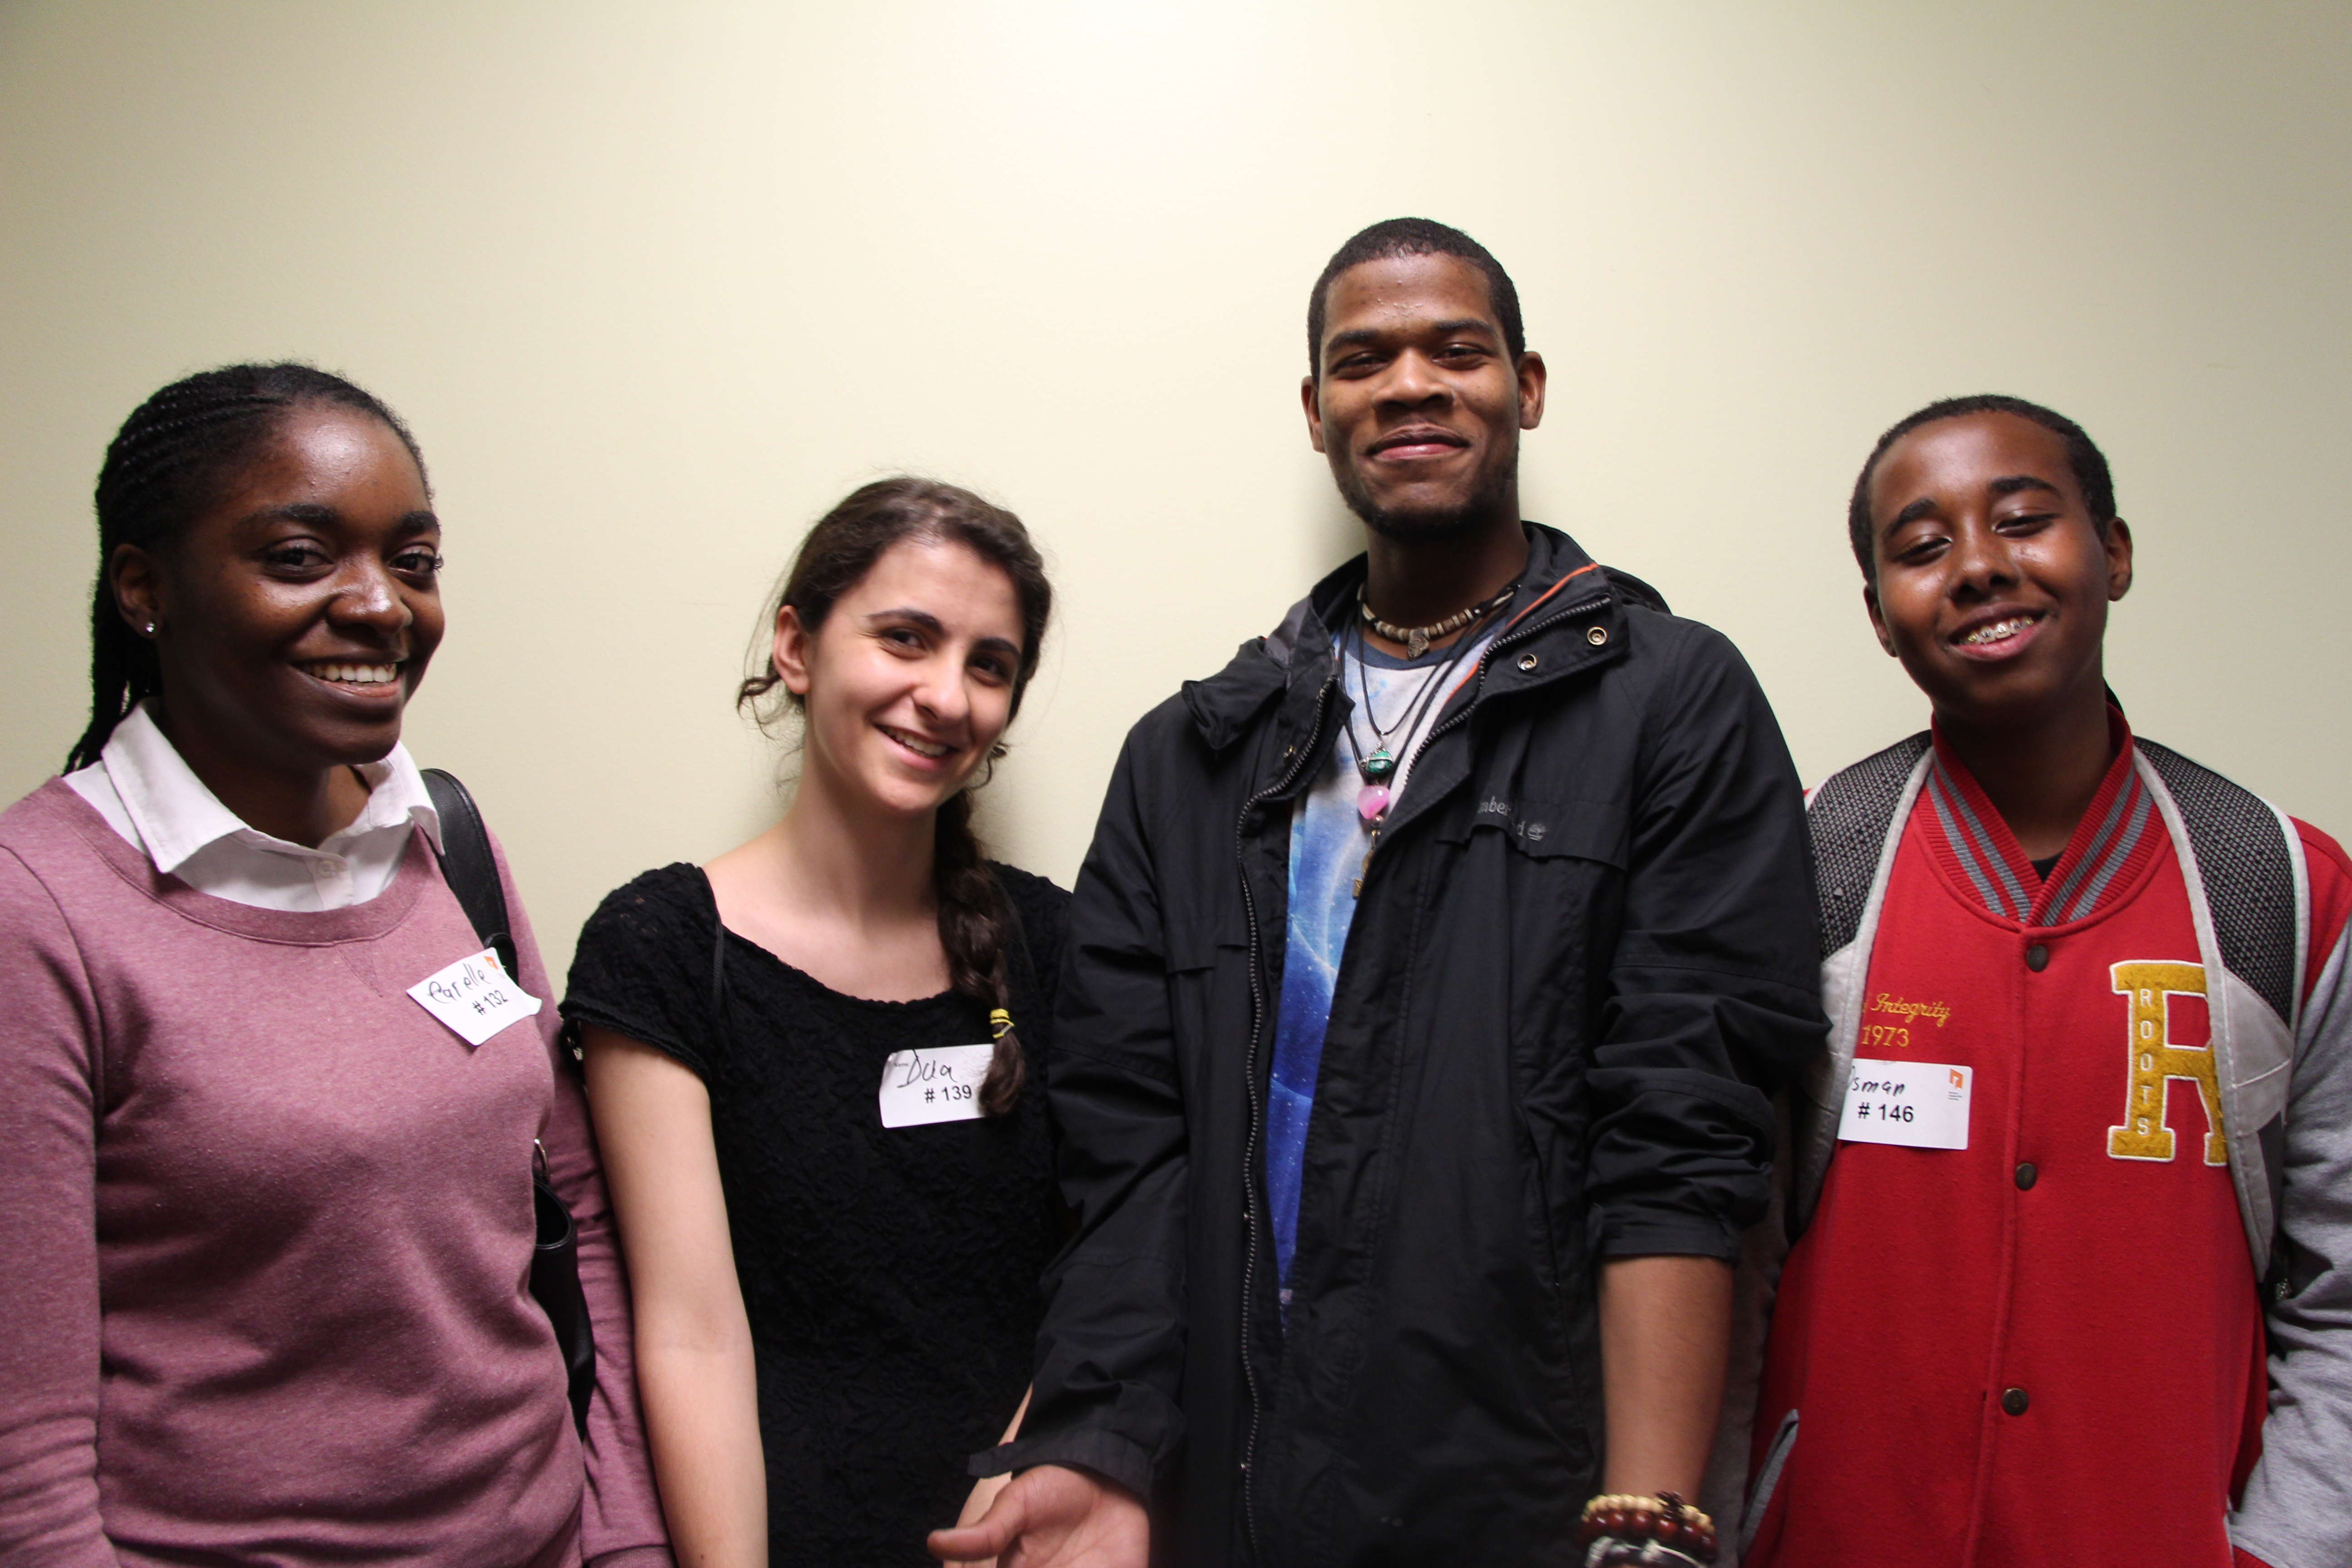 Group of four youth smiling after their interviews for YouthWorx